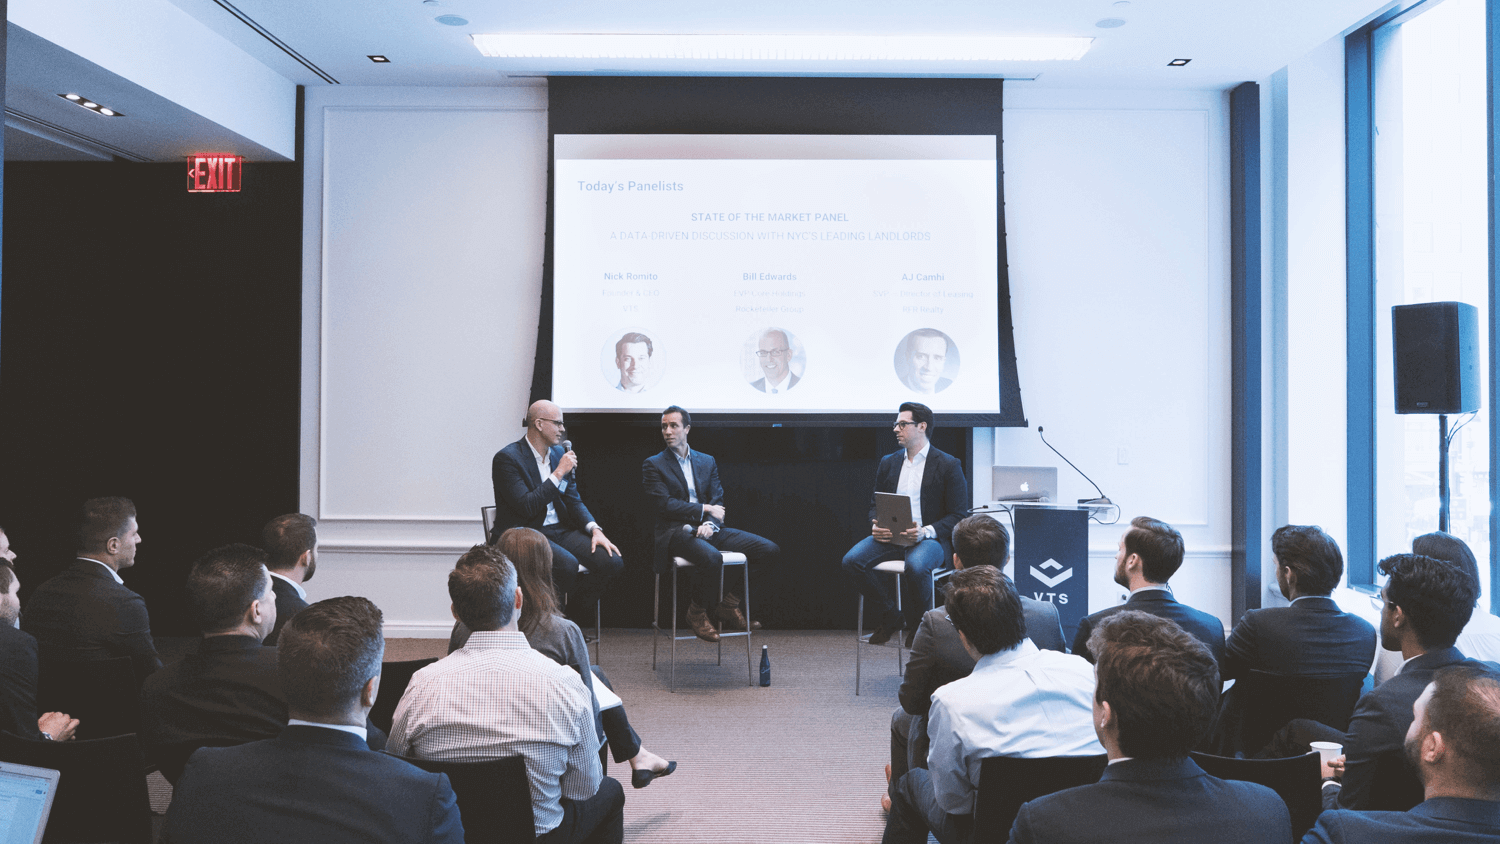 NYC Landlords Rockefeller Group, RFR Realty, and Sage Realty Talk Transformation and Growth in a Rapidly Changing Market